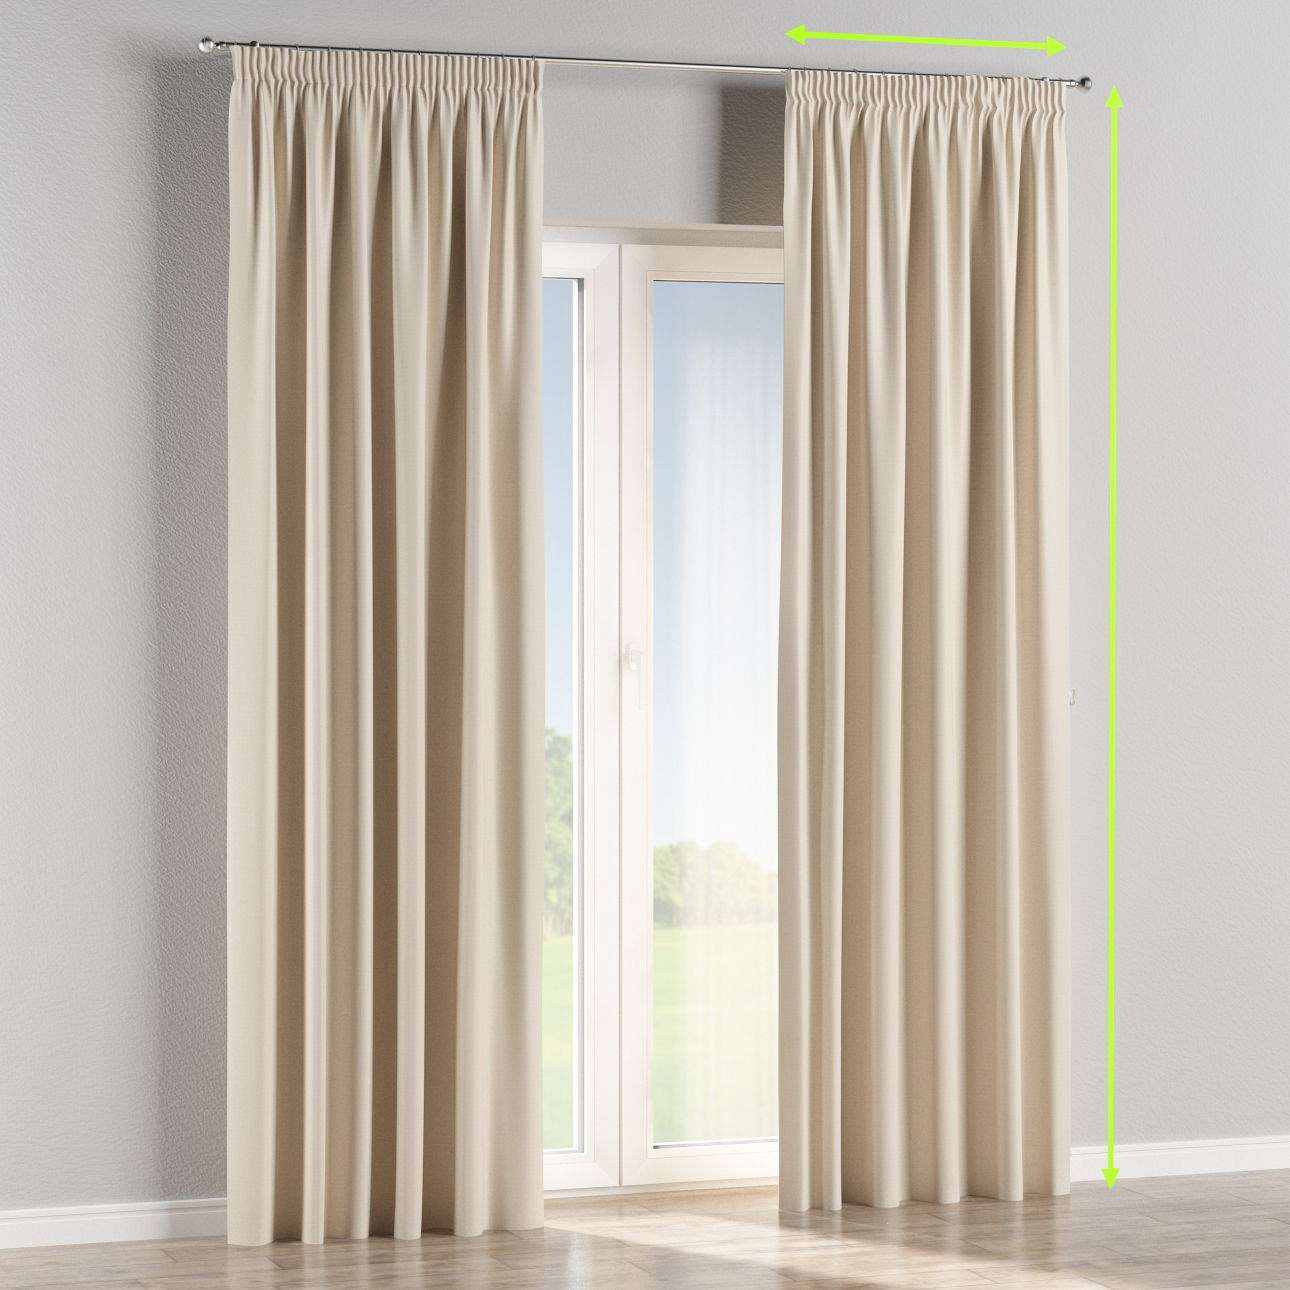 Blackout pencil pleat curtains in collection Blackout, fabric: 269-66